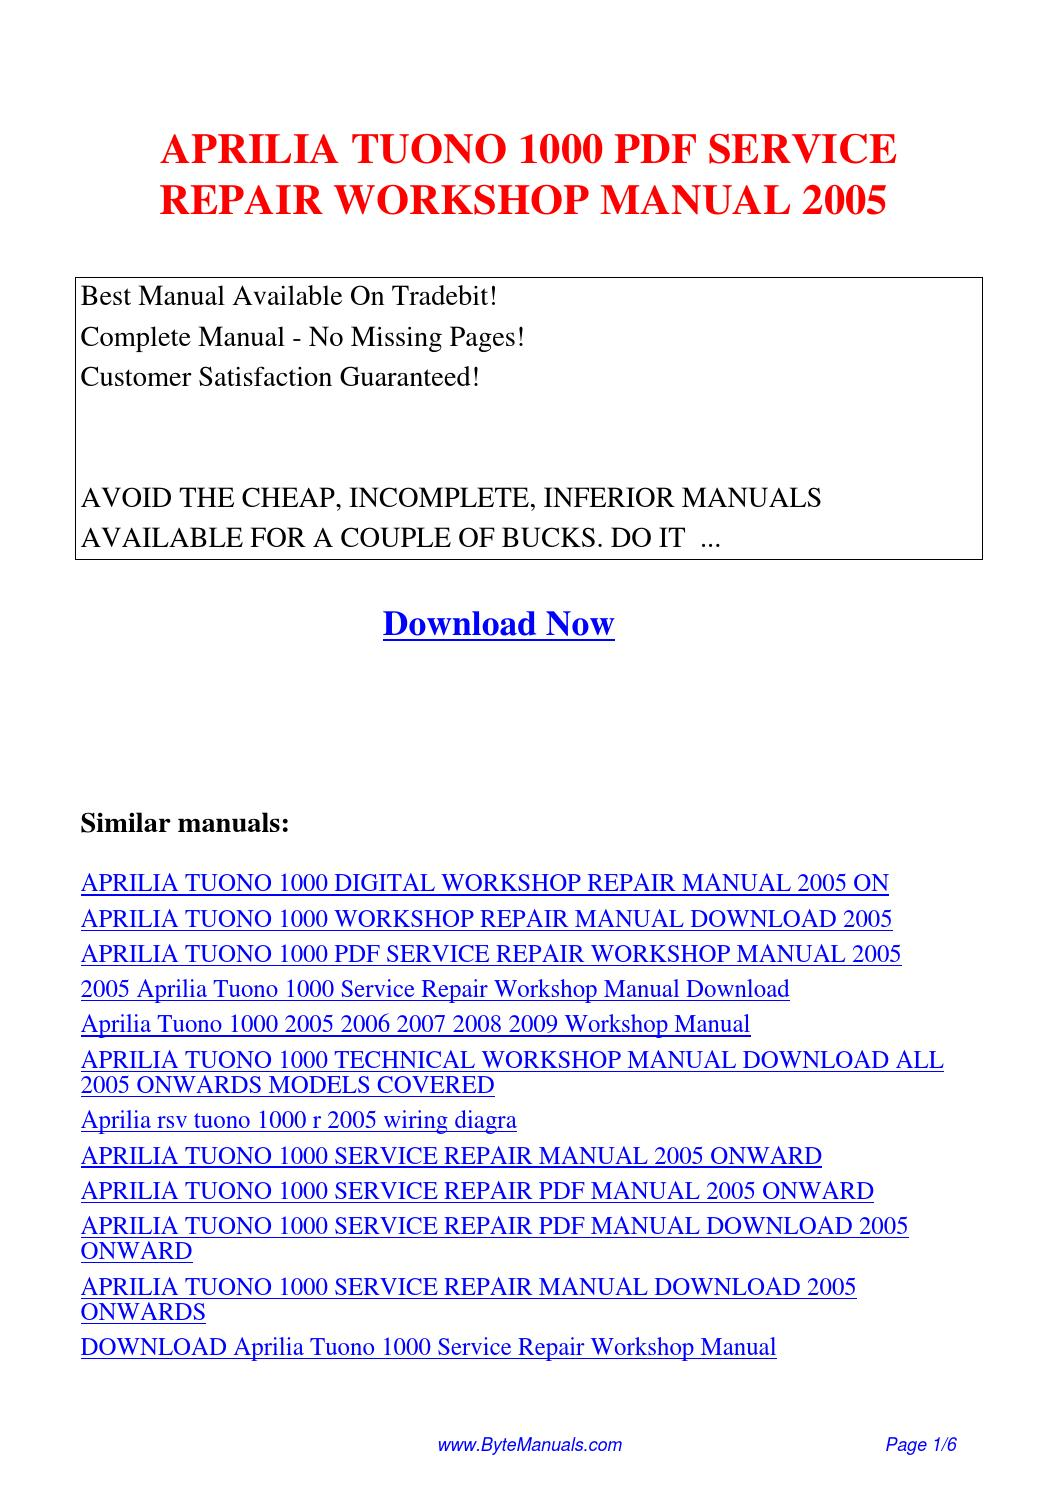 APRILIA TUONO 1000 SERVICE REPAIR WORKSHOP MANUAL 2005.pdf by Ging Tang -  issuu